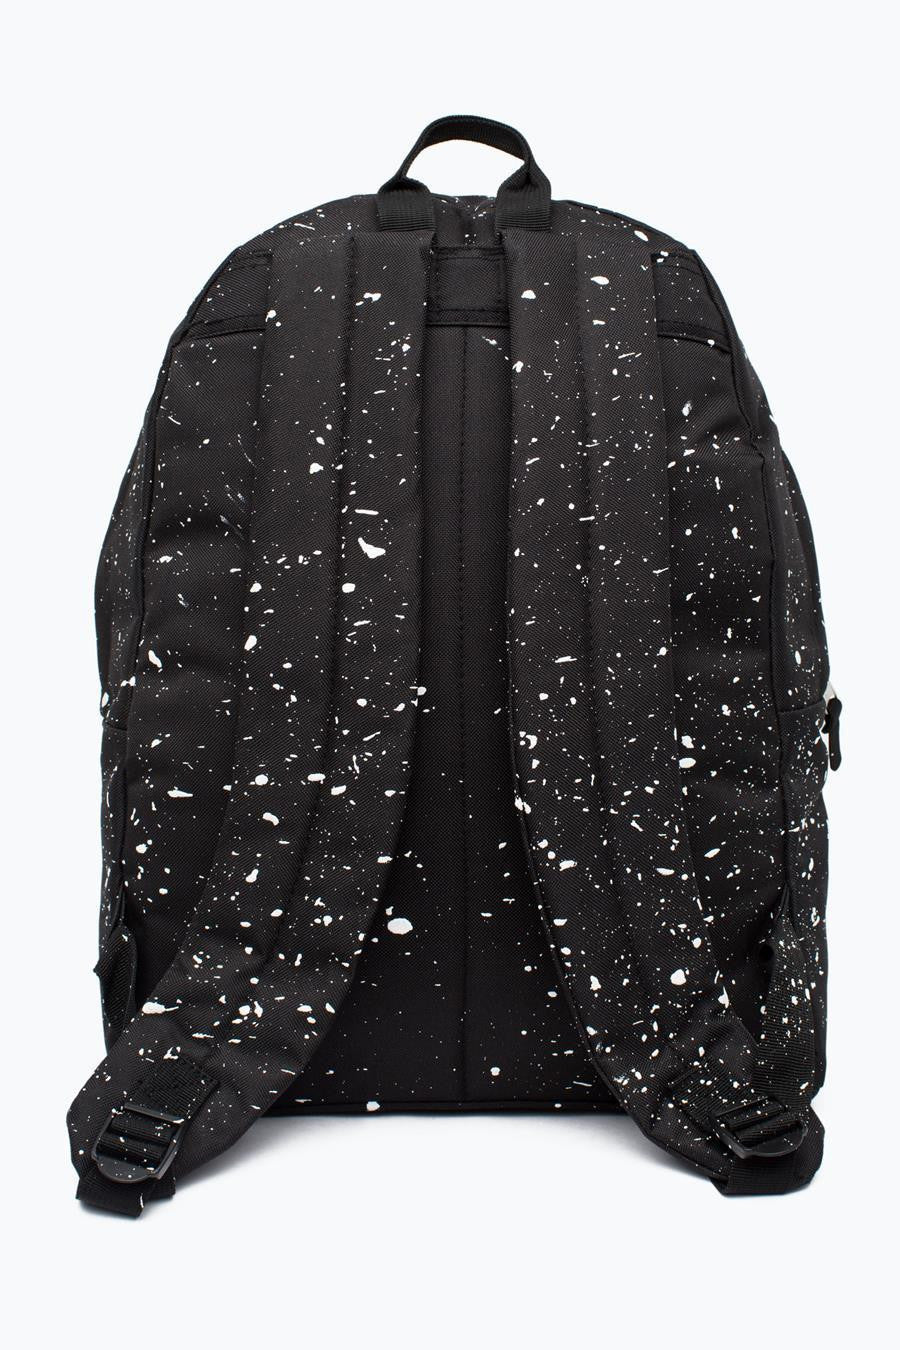 HYPE SPECKLE  BLACK/WHITE  BACKPACK